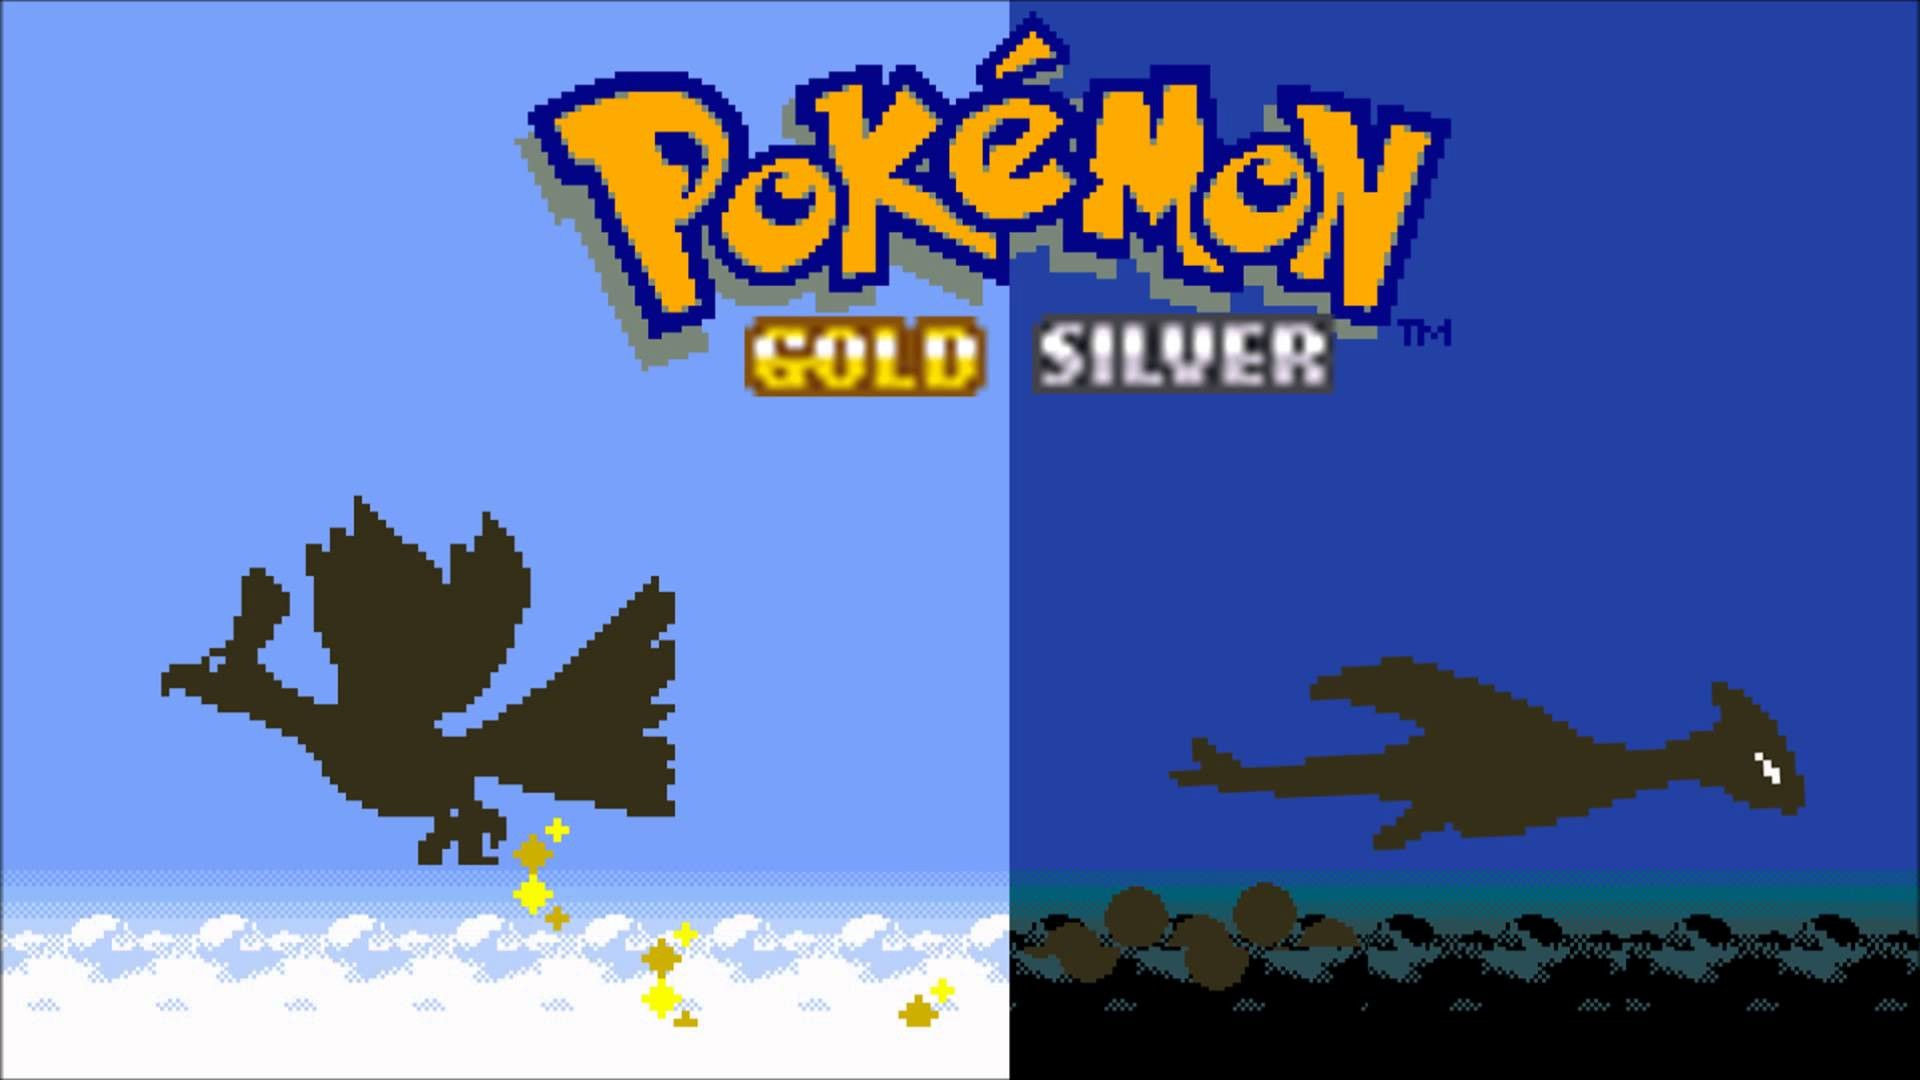 'Gold' & 'Silver' 3DS Download Codes Being Sold In Retro-Inspired Boxes